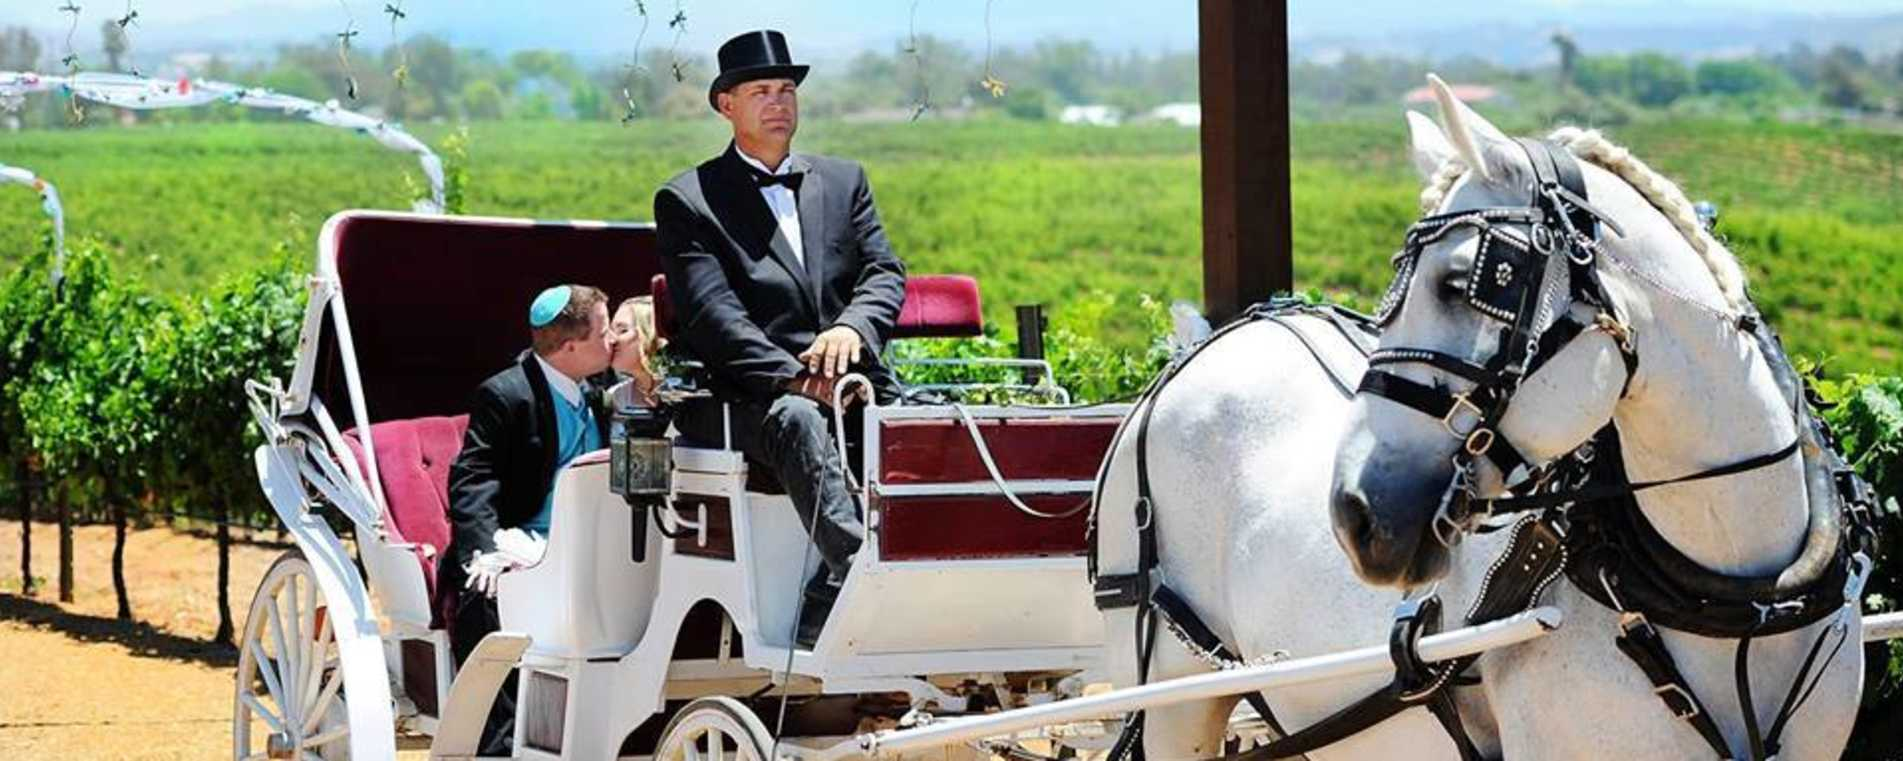 Carriage Ride - Temecula Carriage Co.